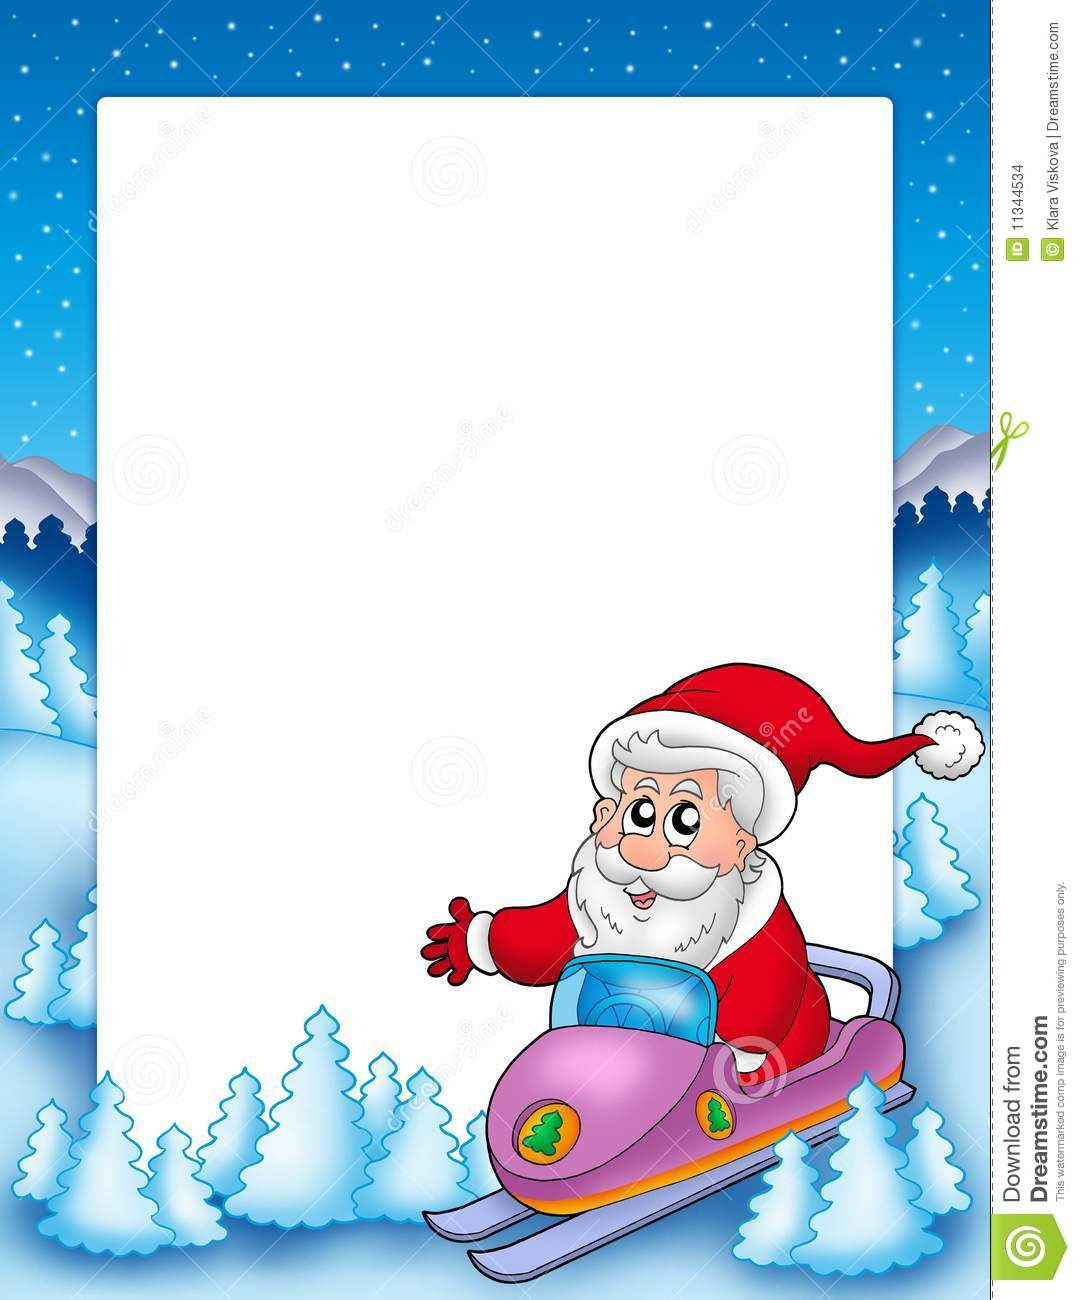 Frame with santa claus on scooter stock illustration frame with santa claus on scooter jeuxipadfo Choice Image